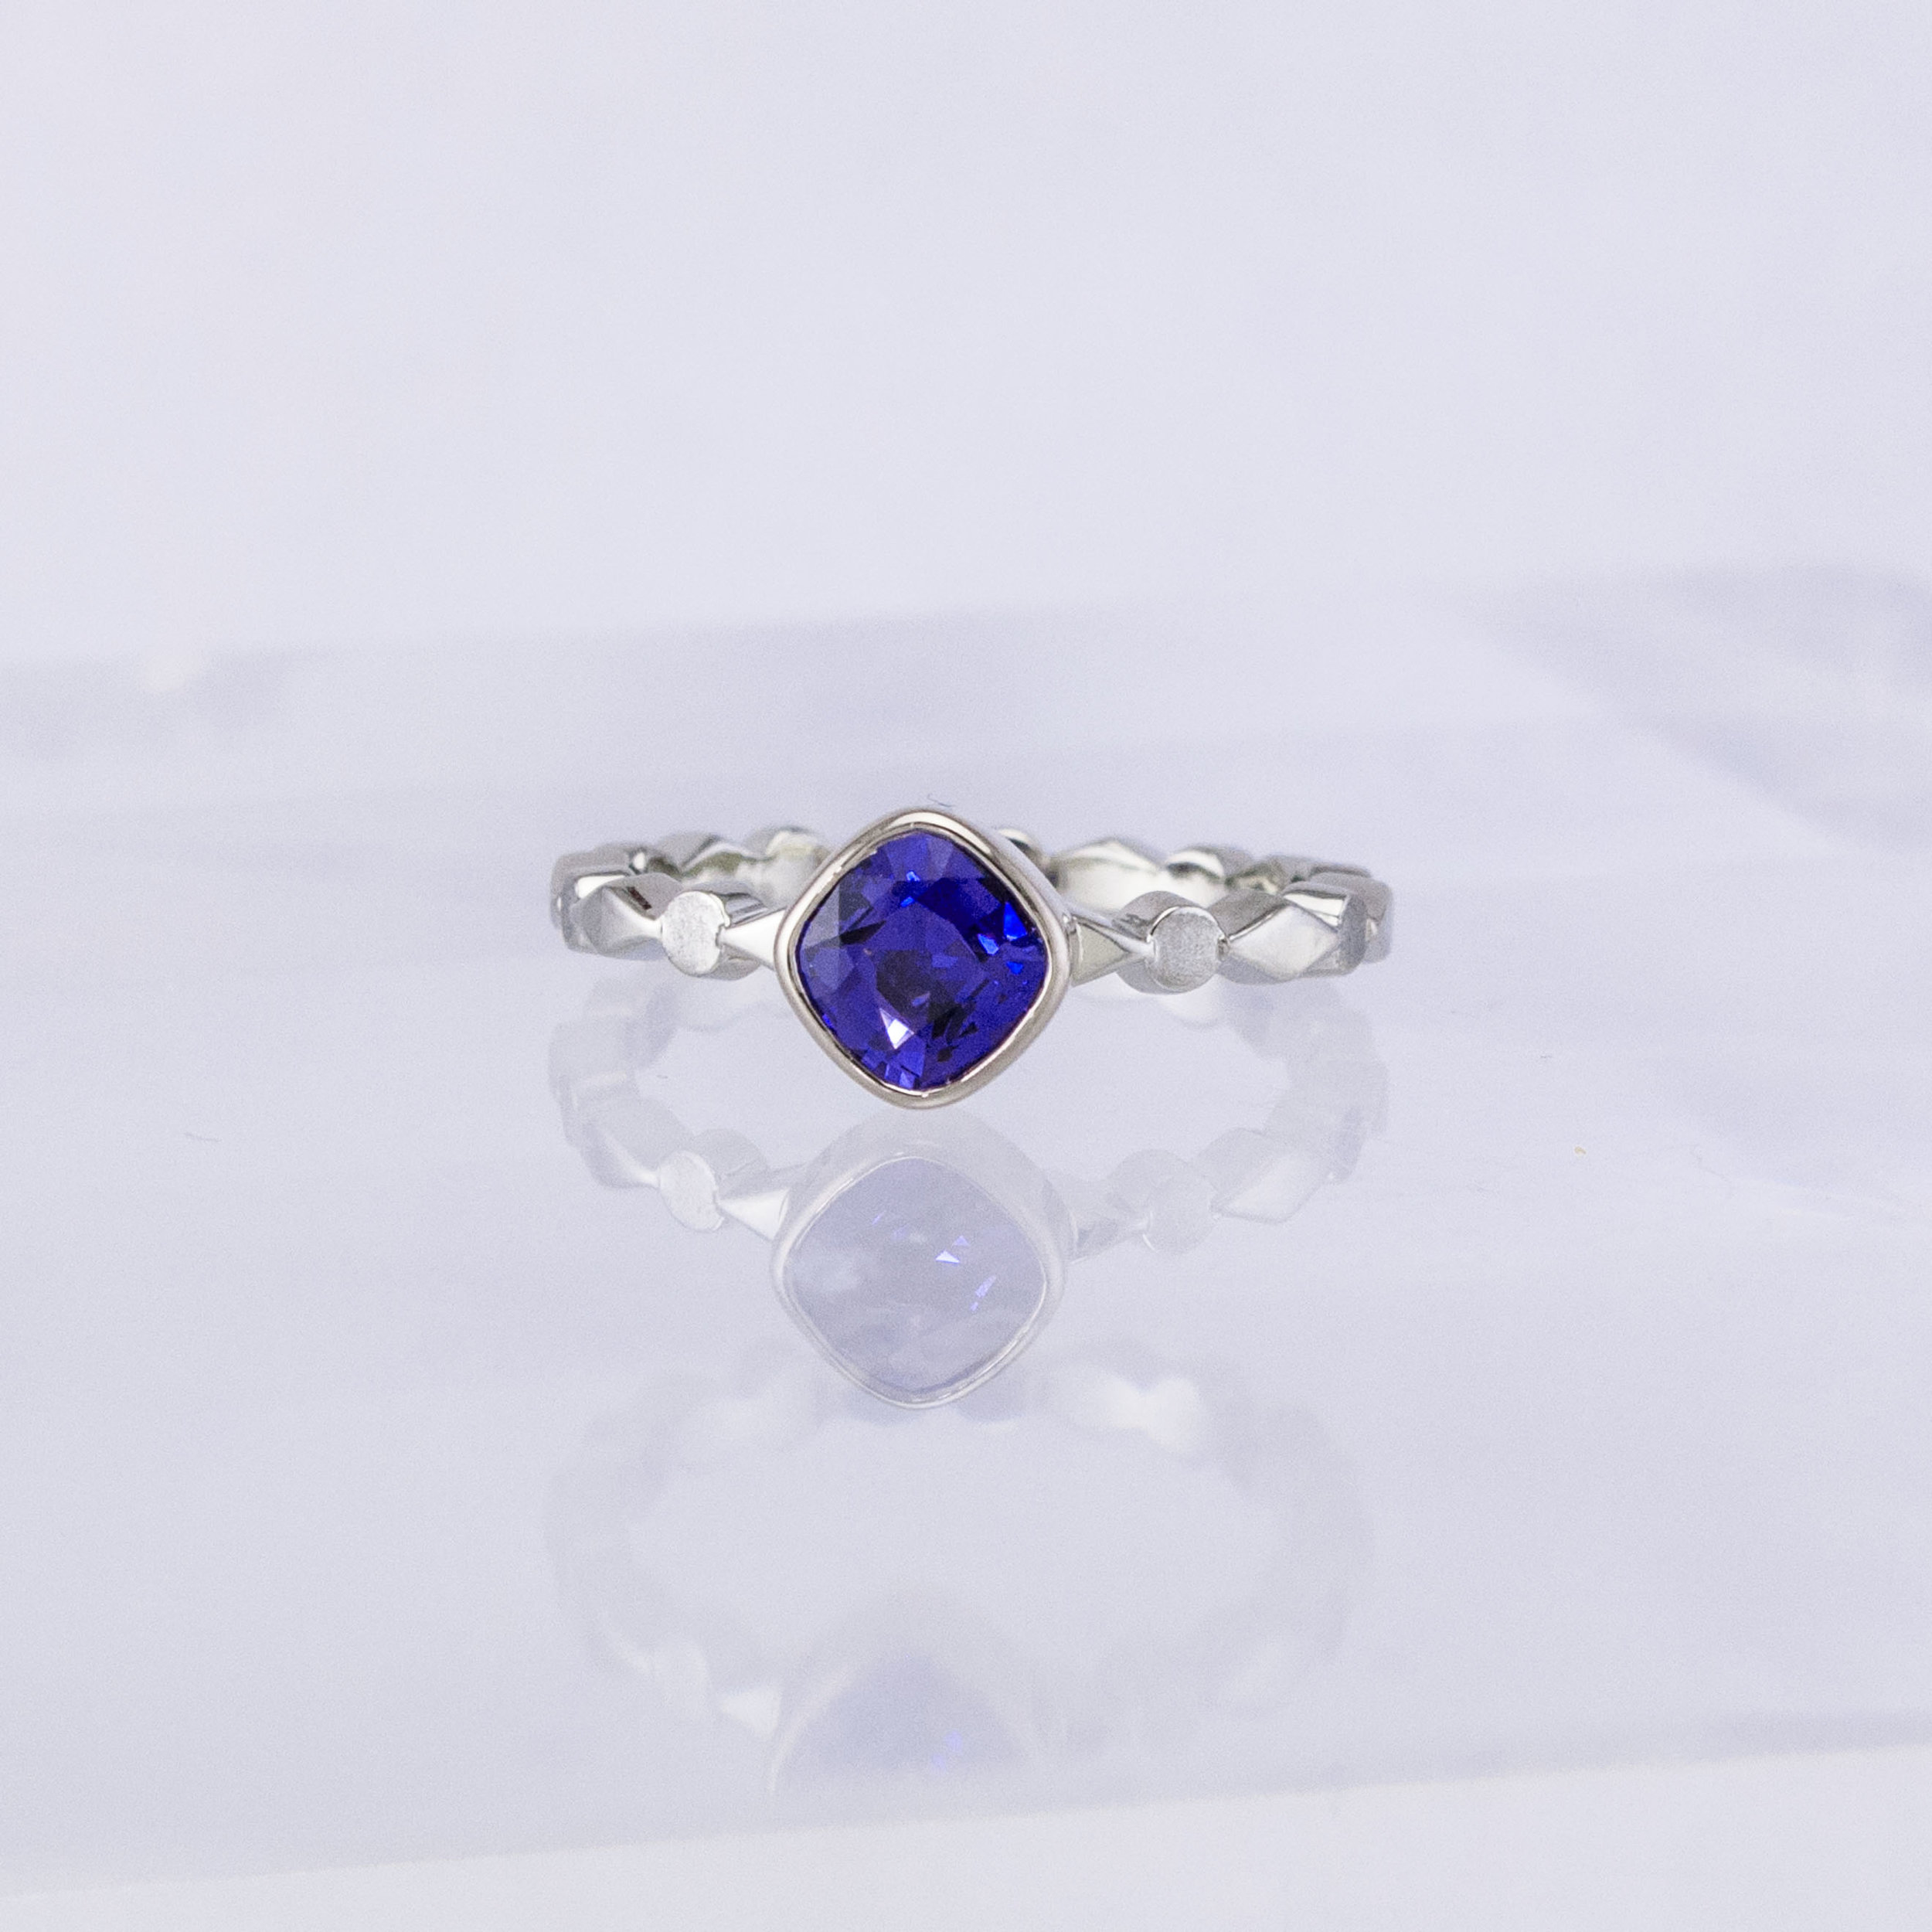 Harlequin Purple Sapphire Solitaire